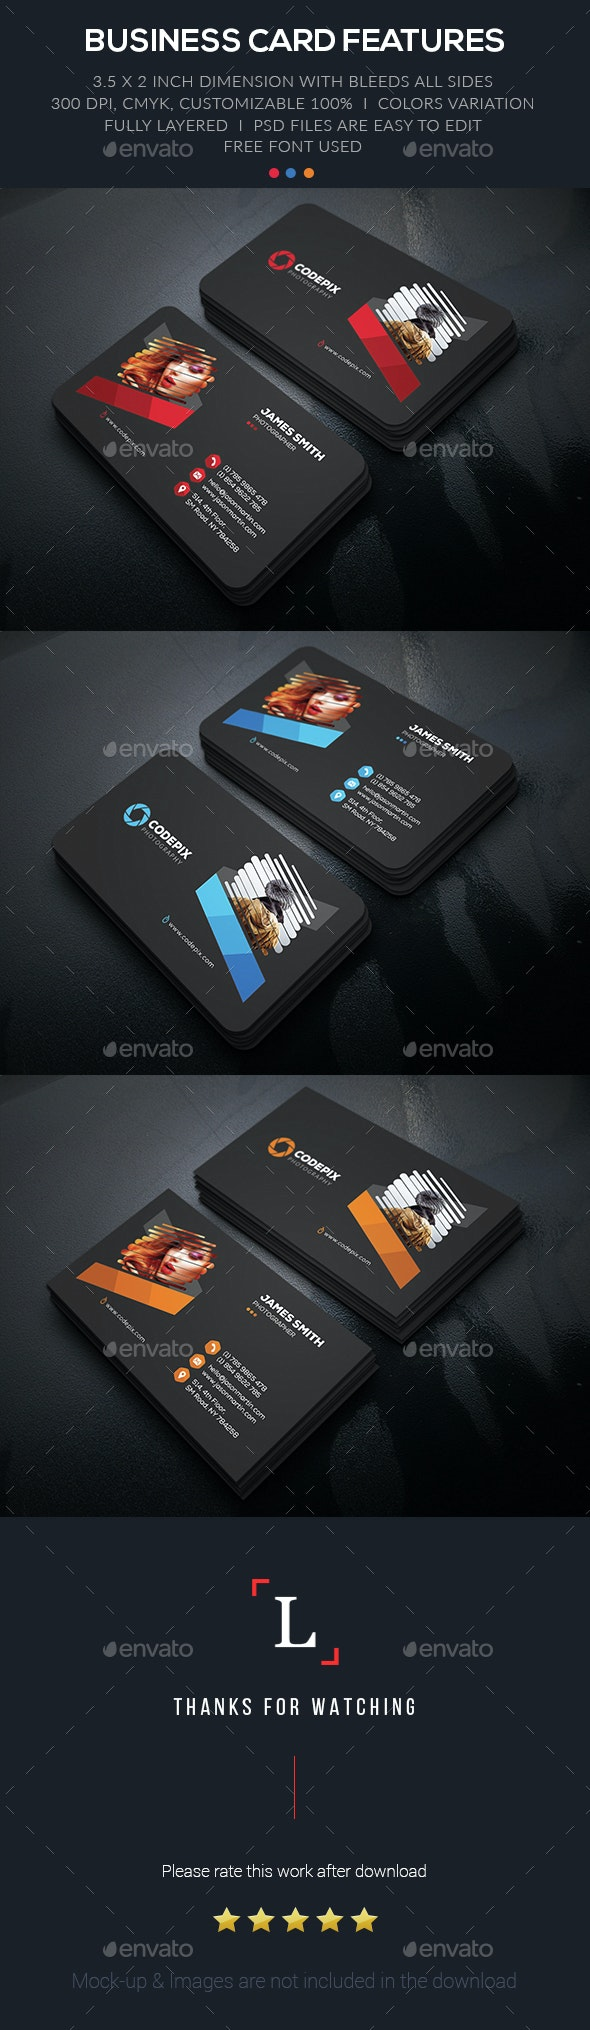 Creative Photography Business Card - Business Cards Print Templates